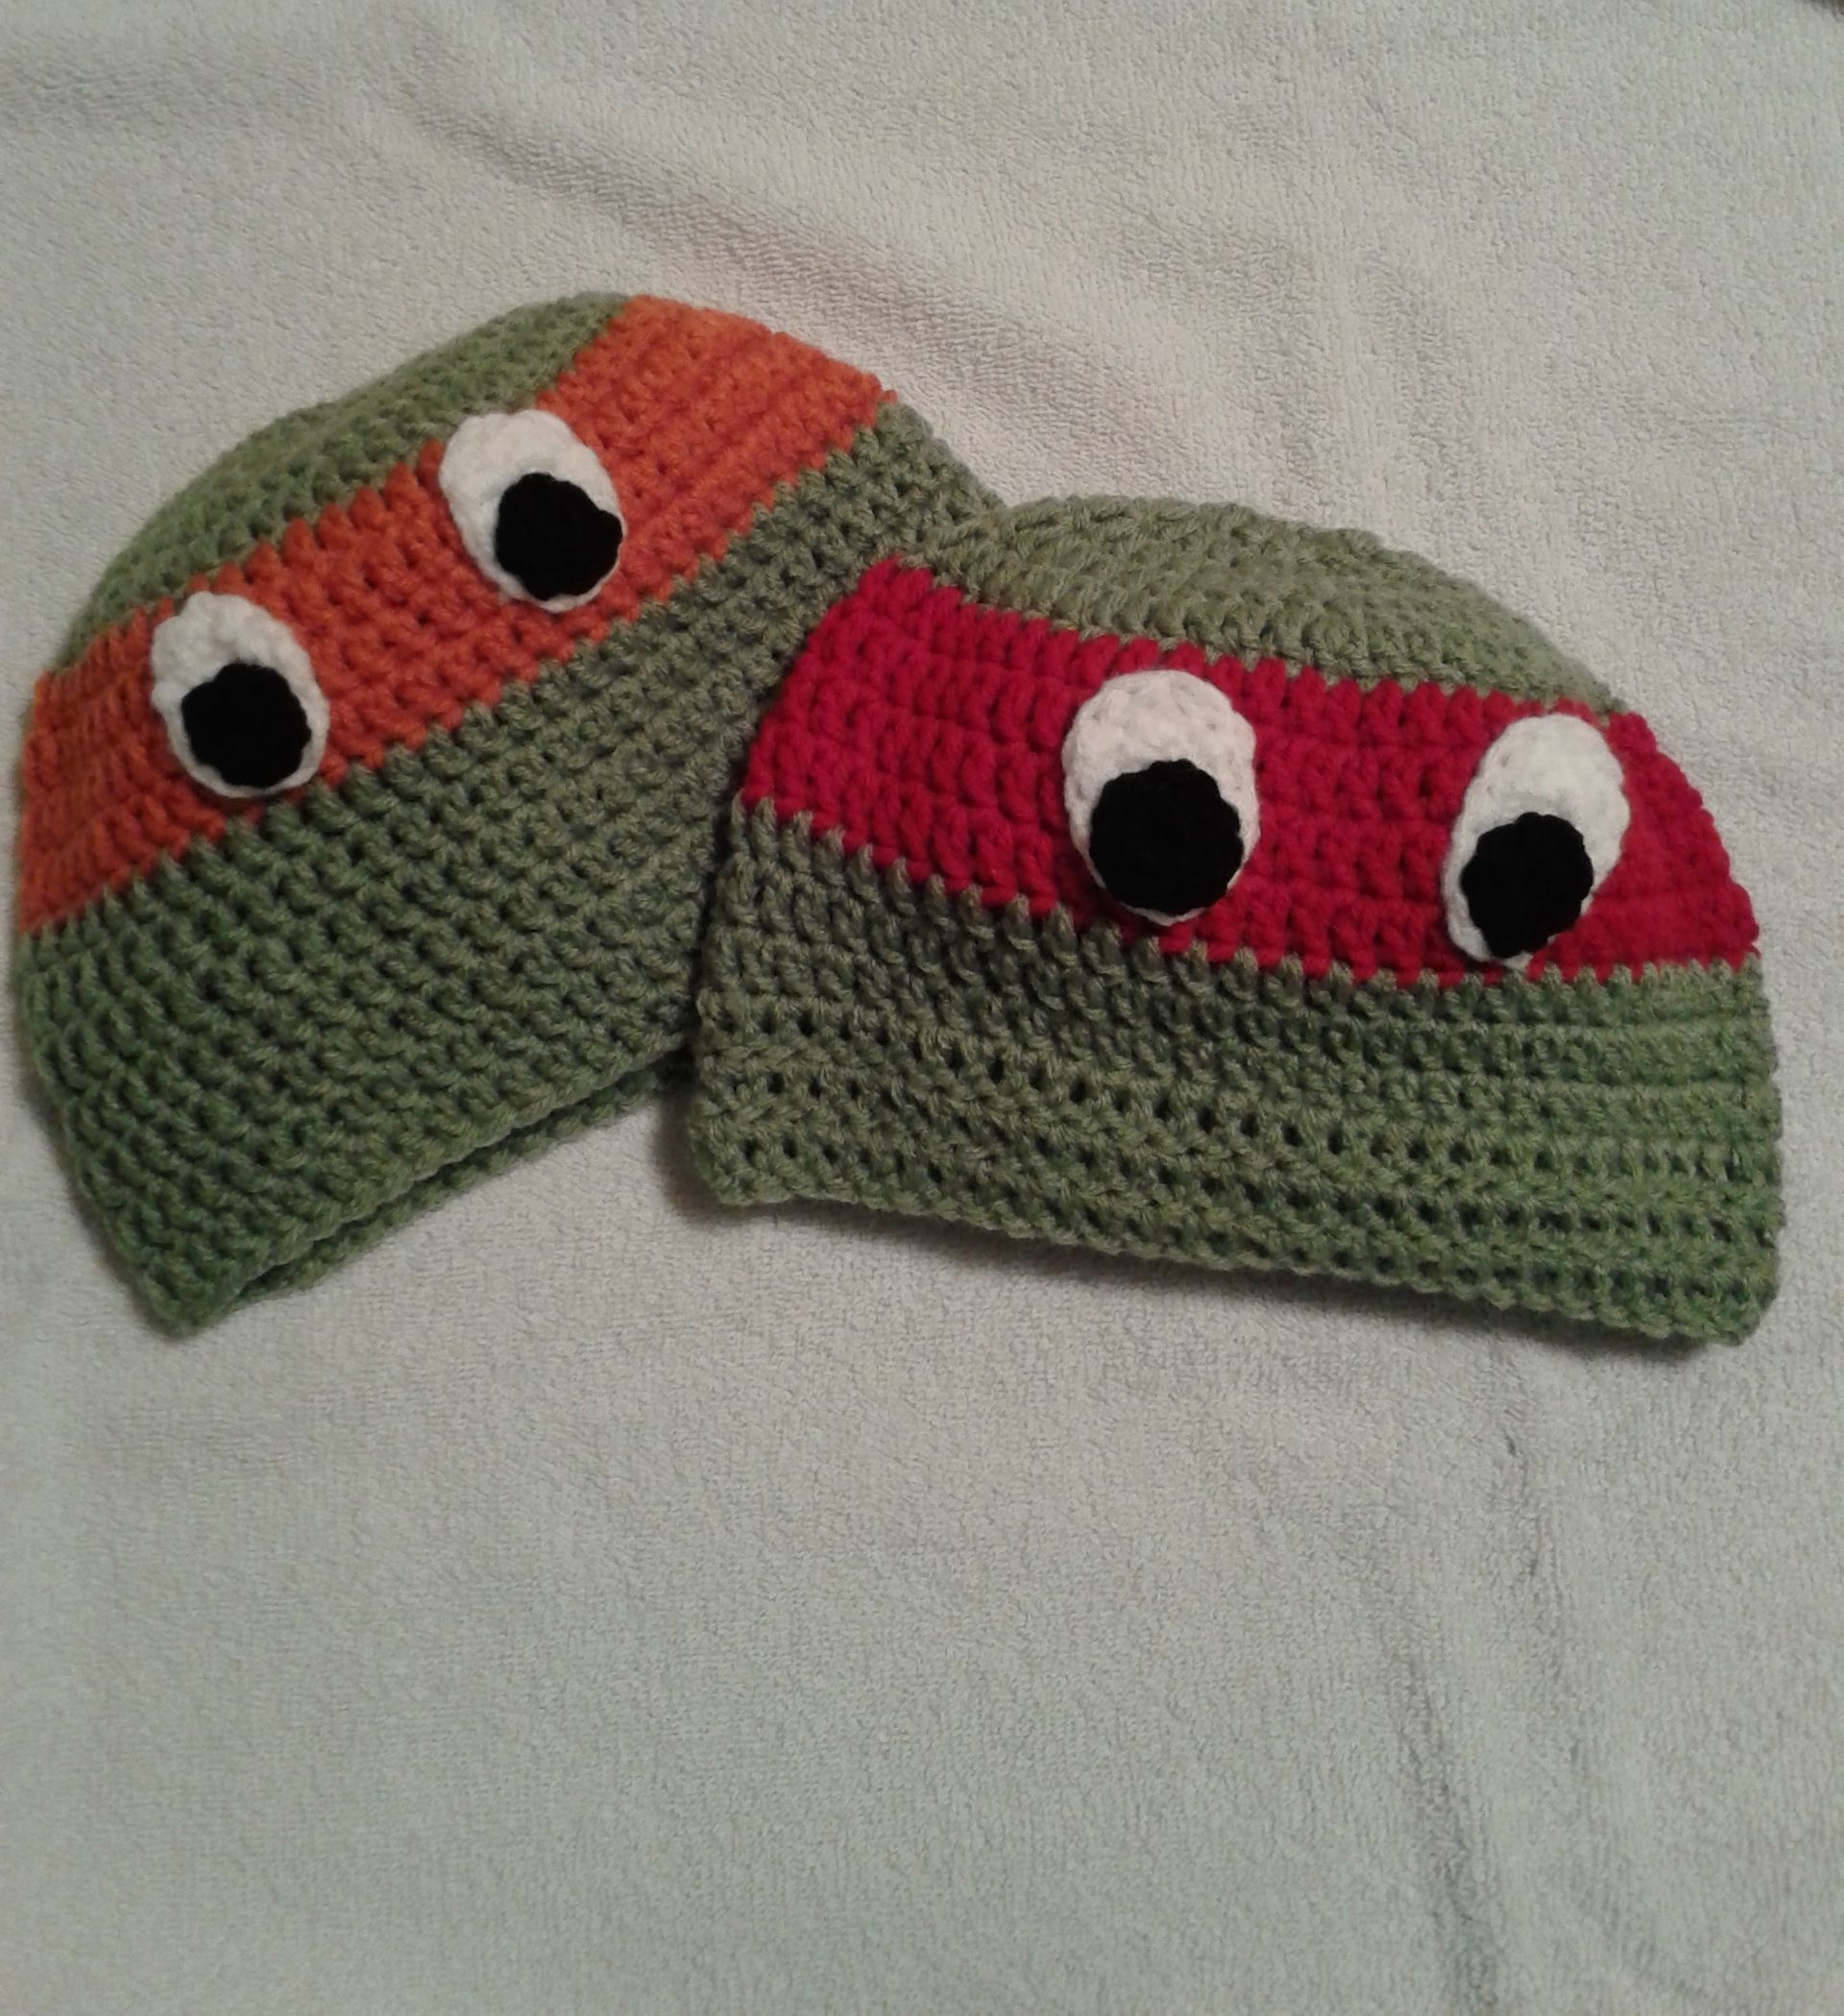 Crocheted infants and childrens ninja turtle beanies in sizes sml